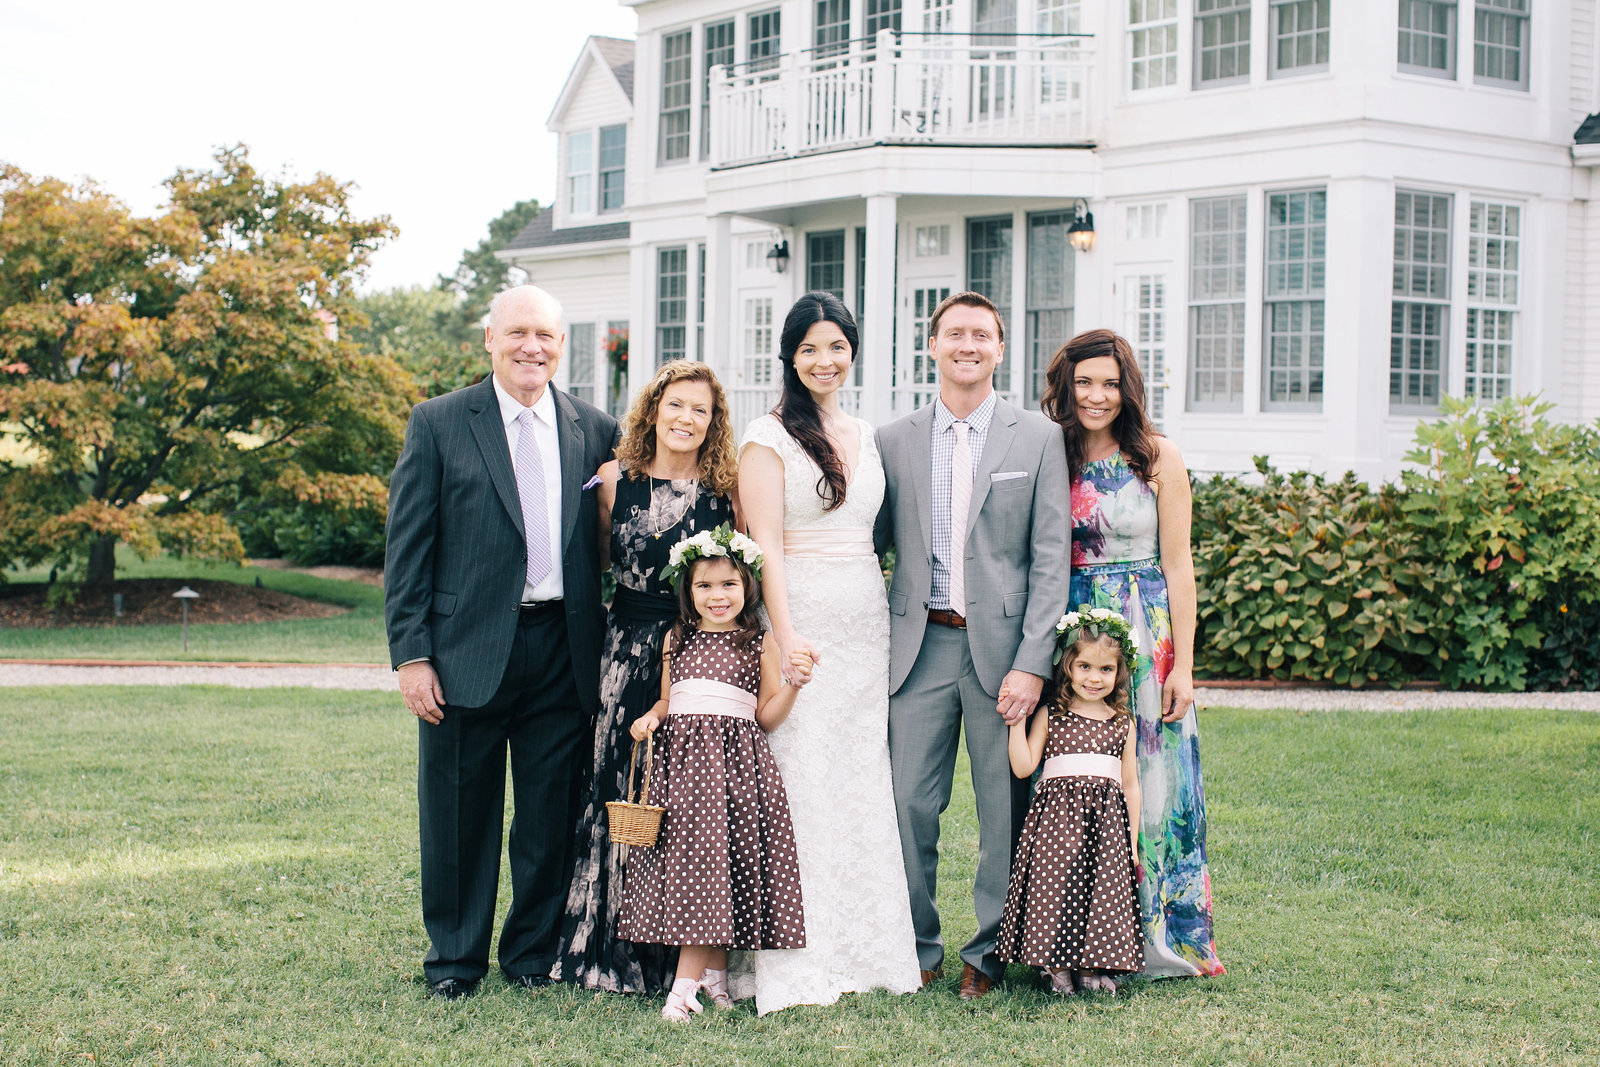 441Morgan_Kevin_WeddingIMG_5293